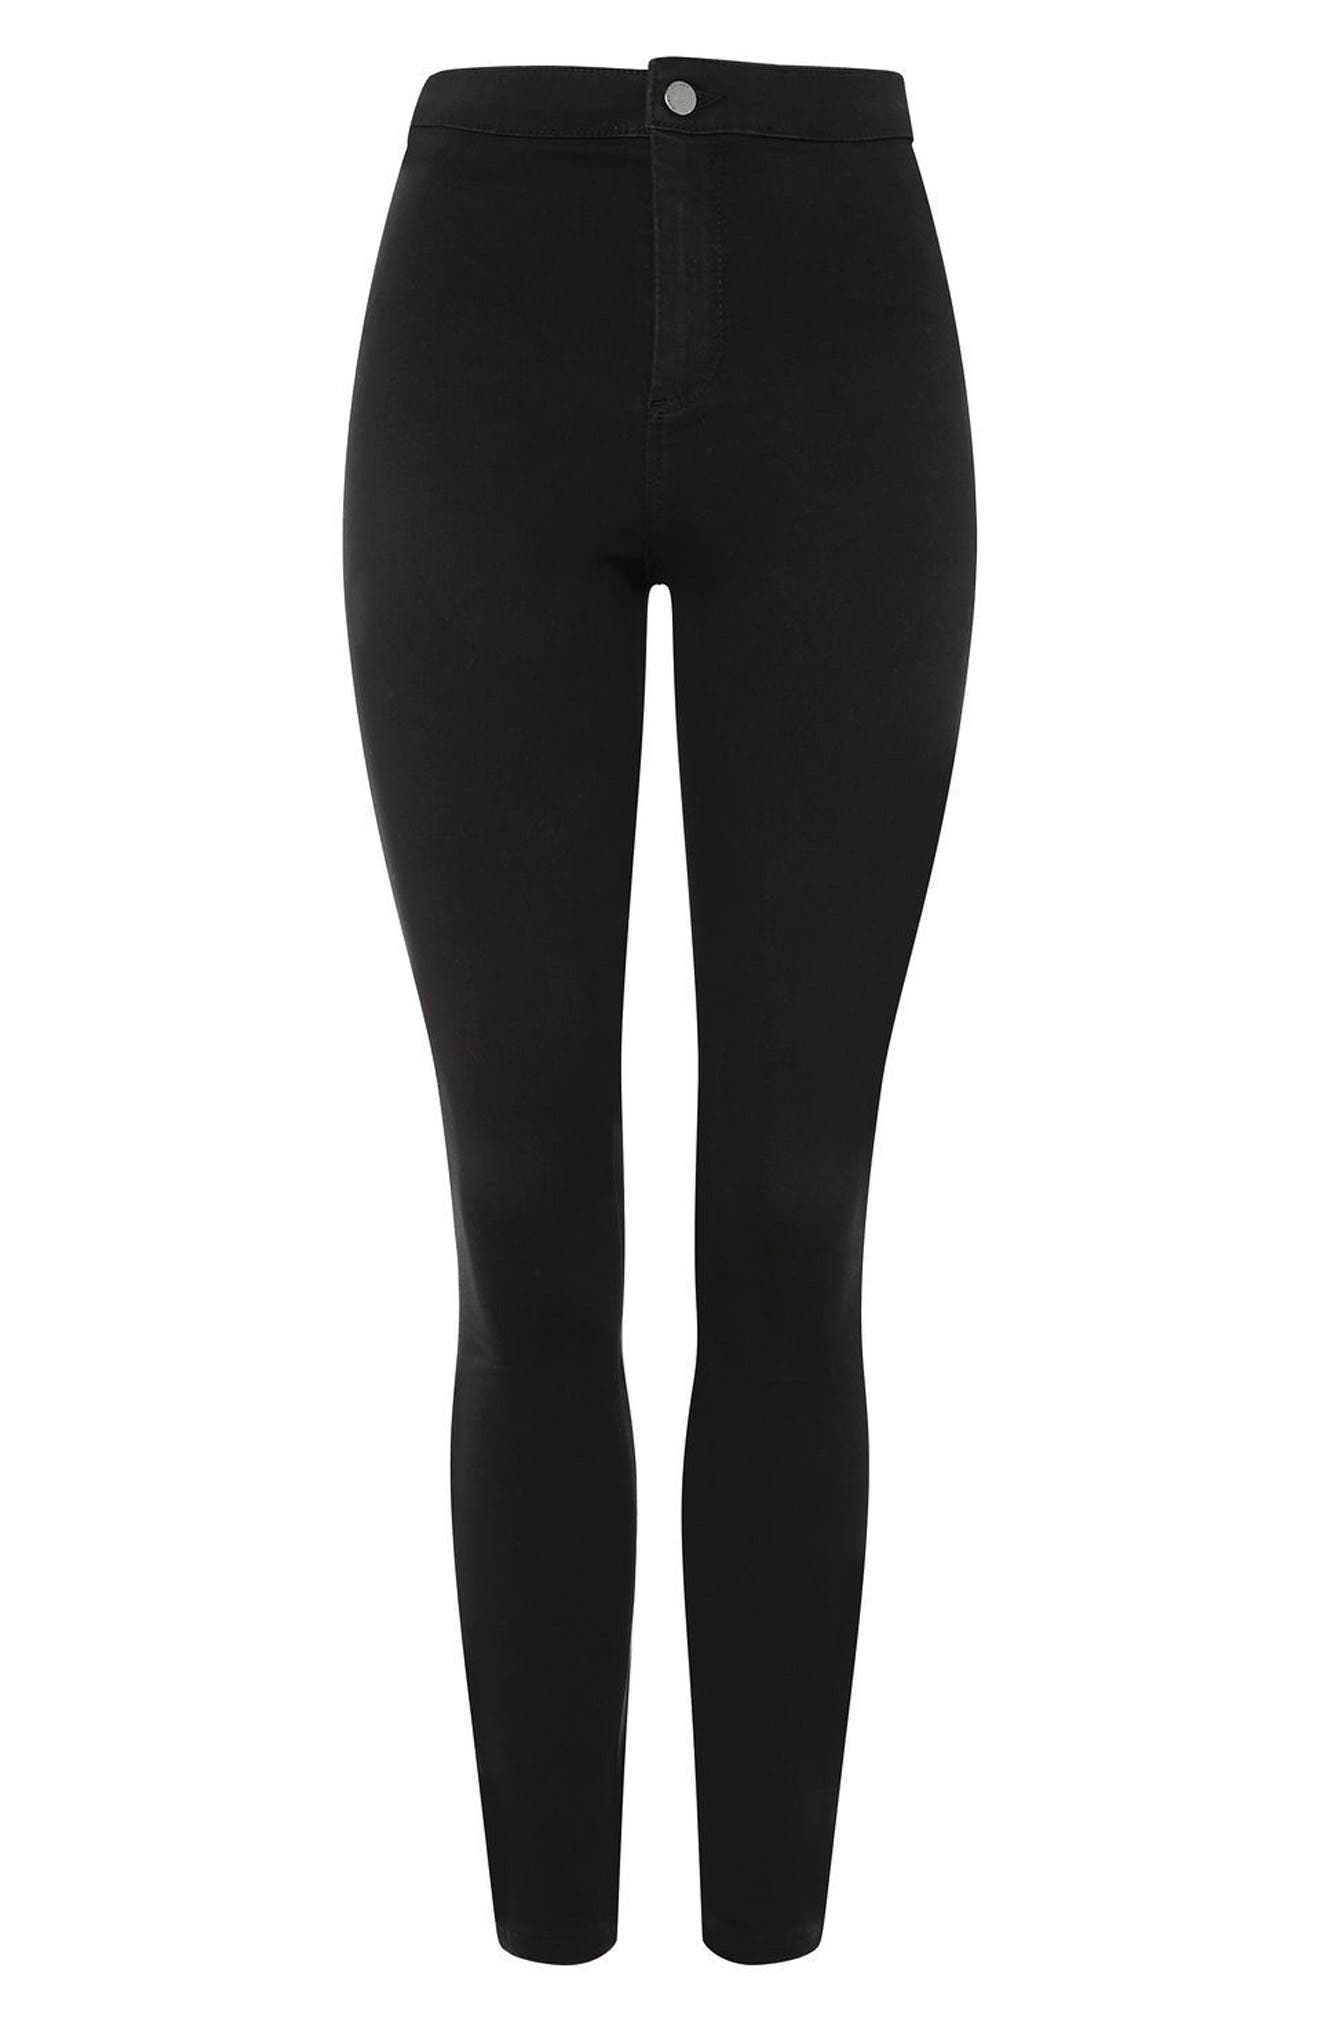 Joni High Waist Skinny Jeans,                             Alternate thumbnail 3, color,                             Black